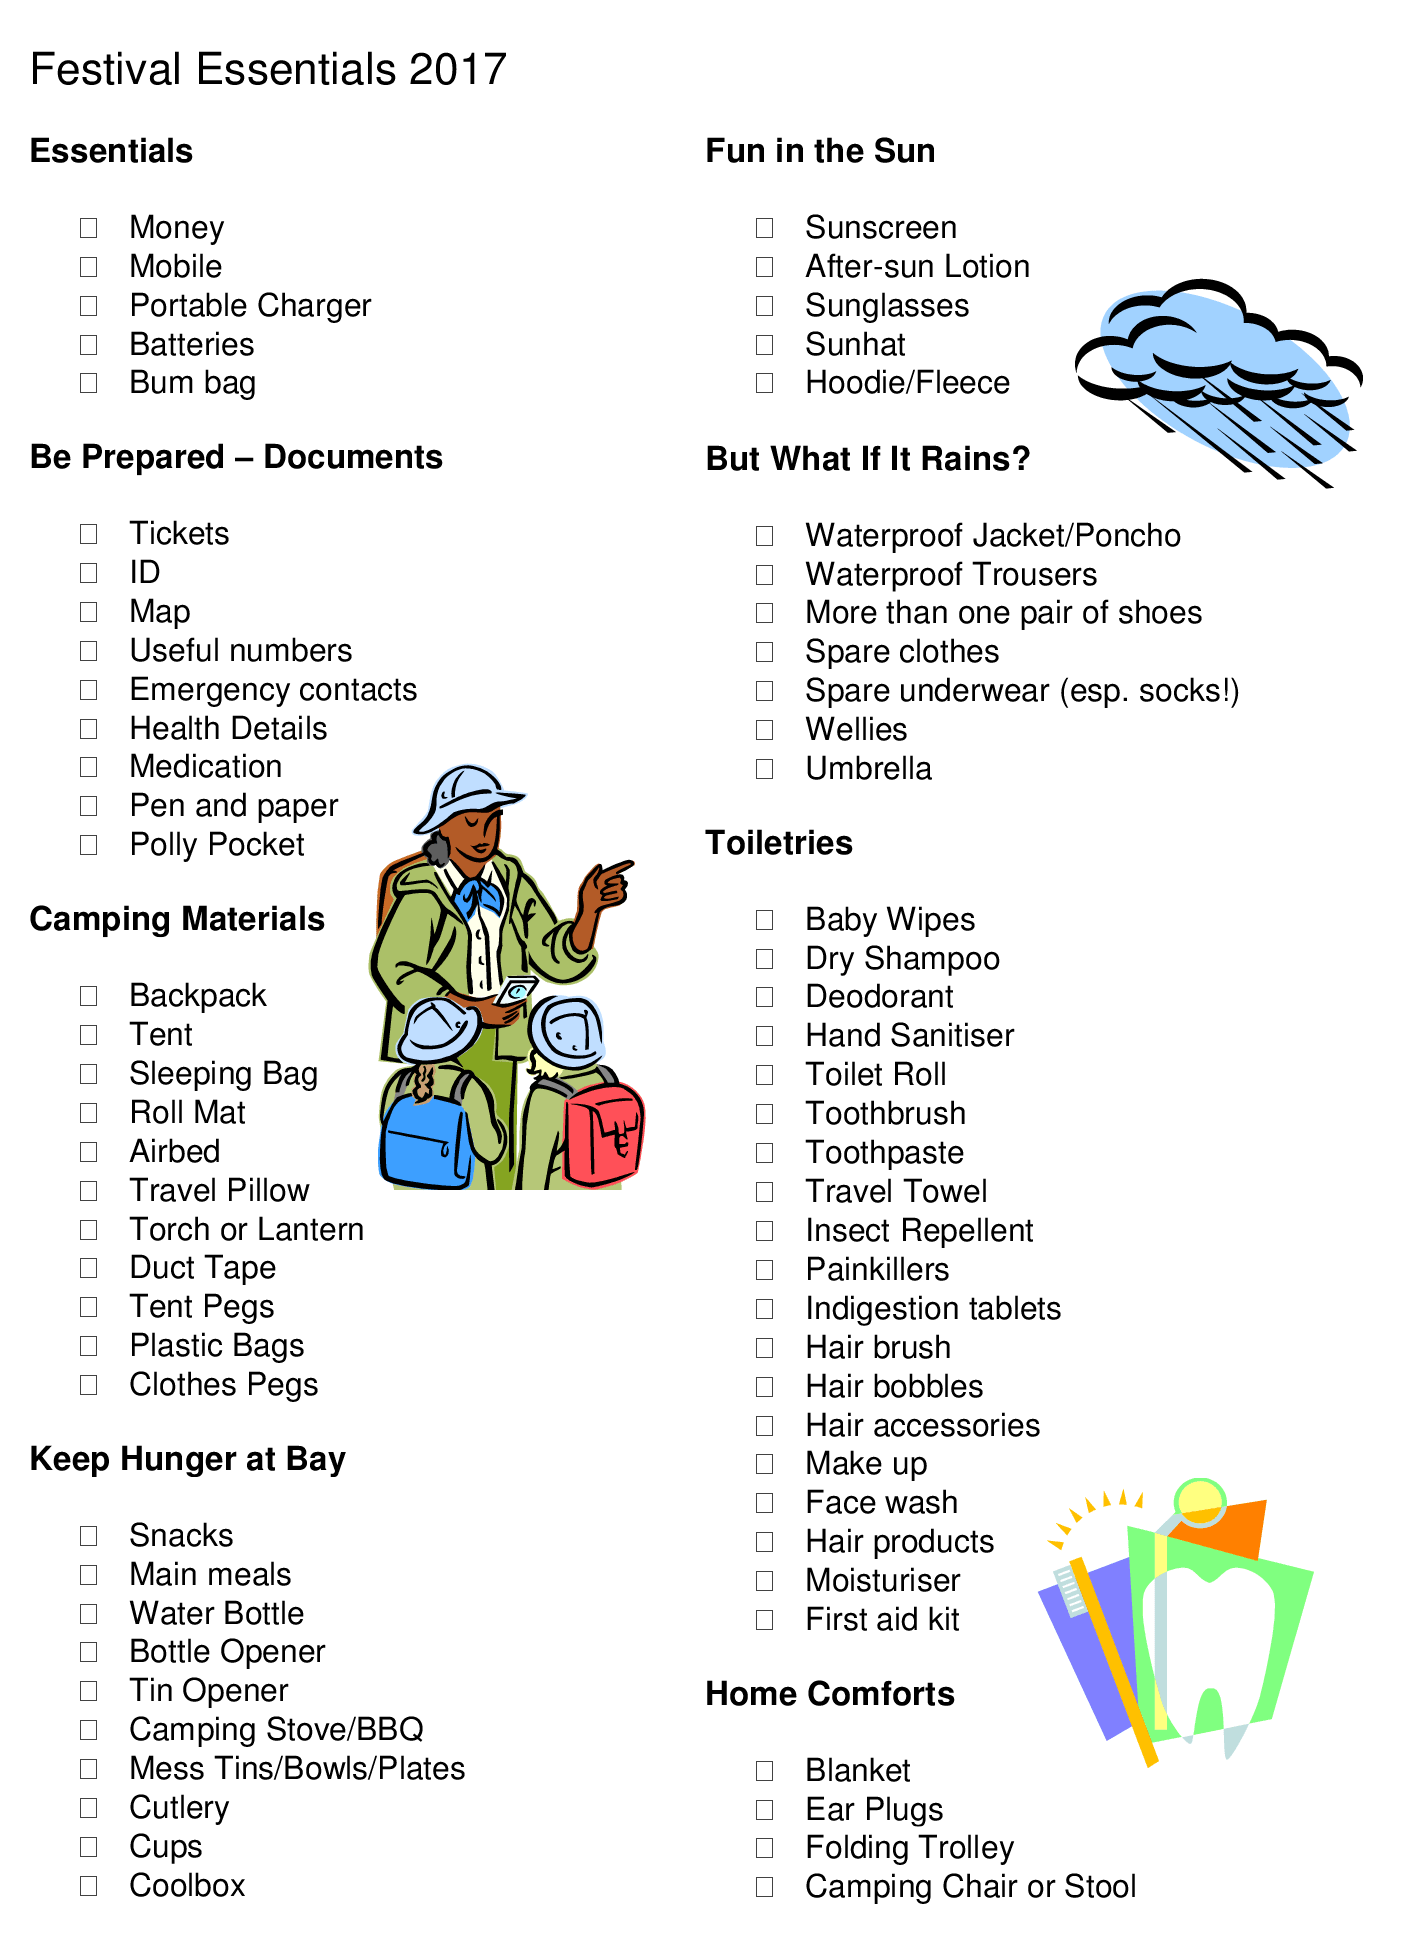 Festival Essentials Printable Checklist